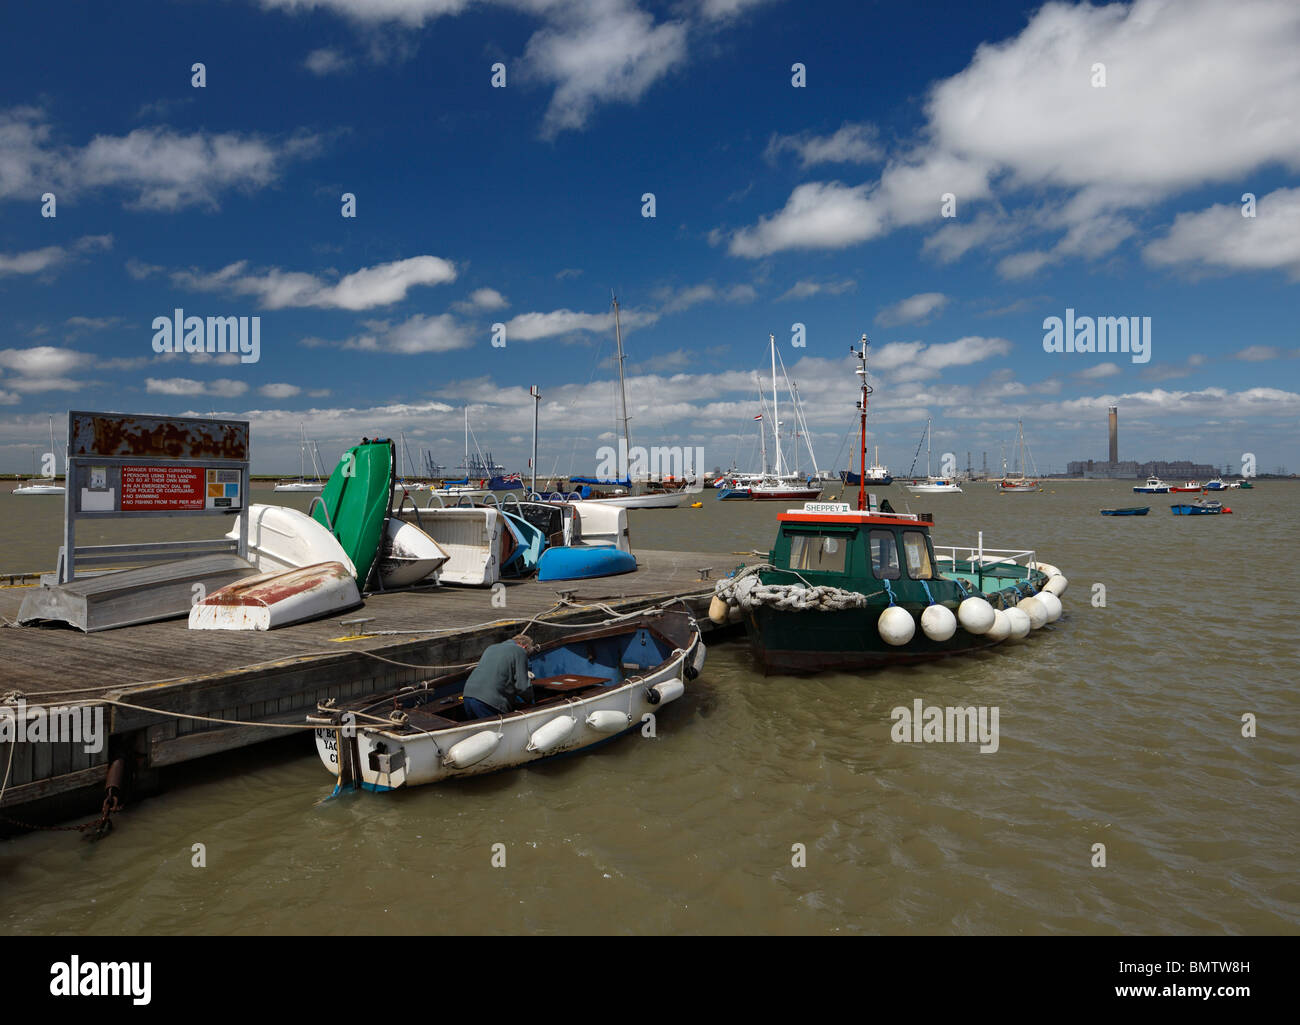 Queenborough yacht club jetty and boats. - Stock Image